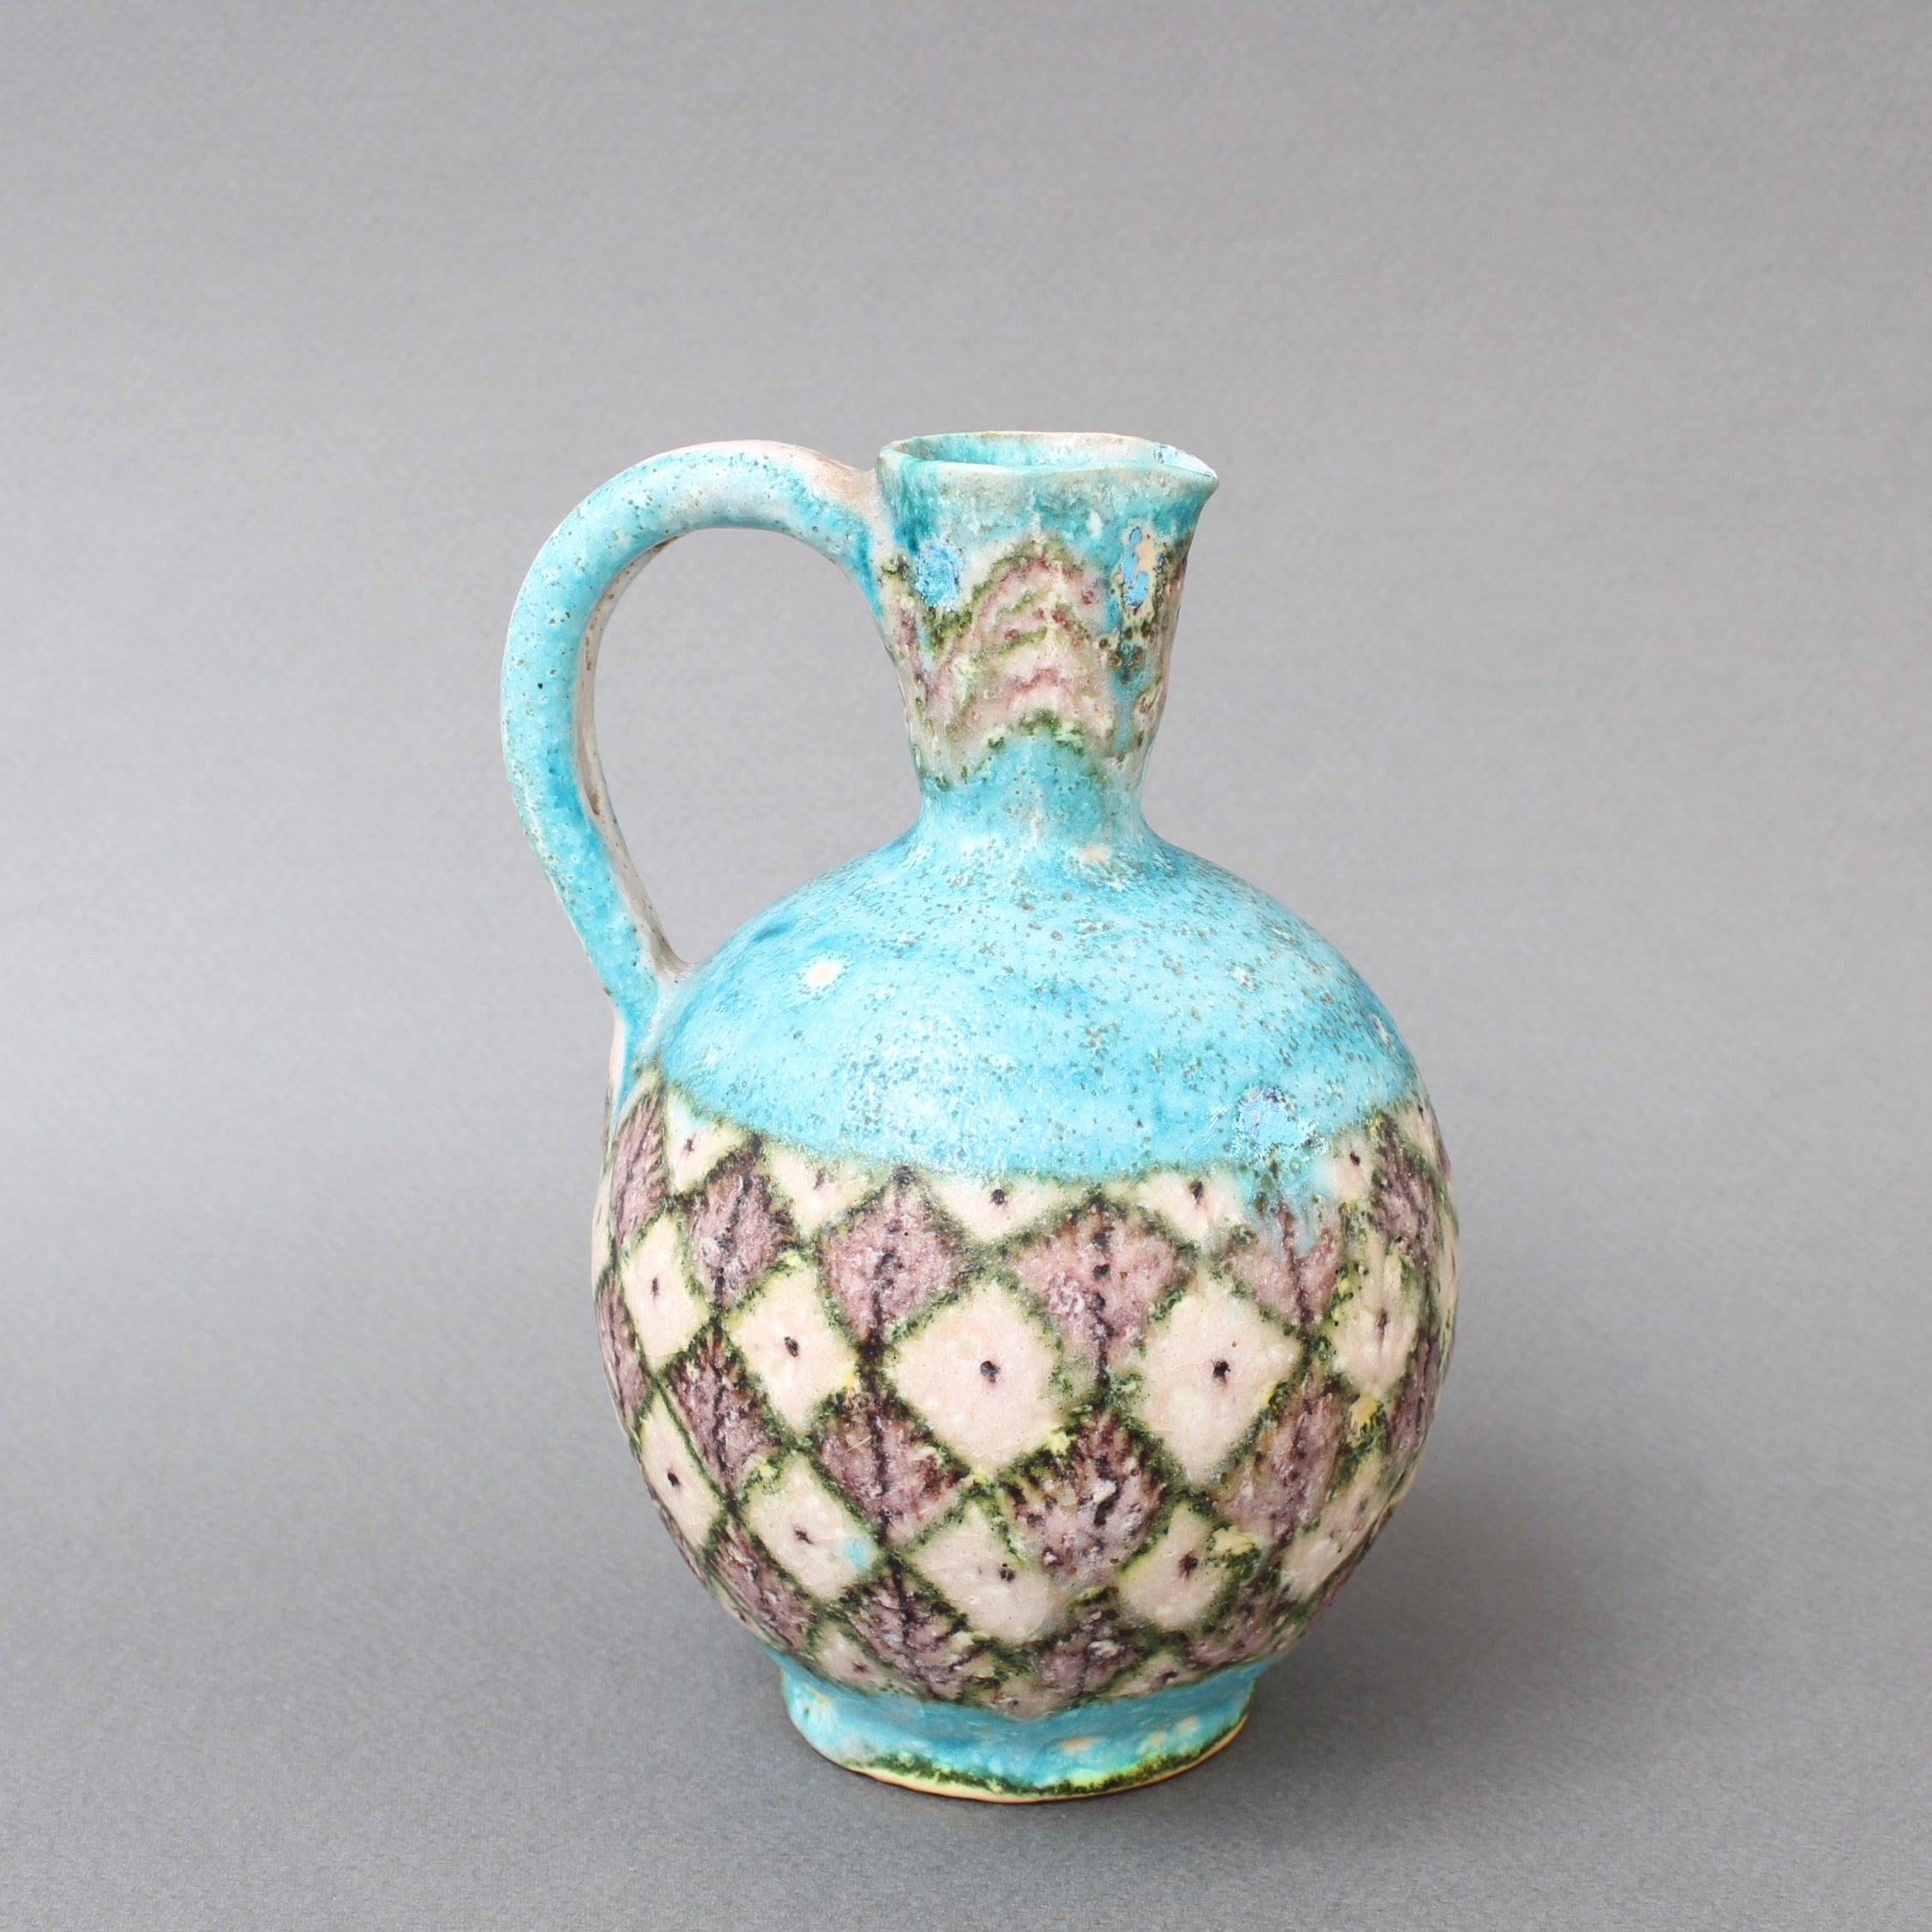 Mid-Century Italian Decorative Ceramic Jug by Guido Gambone (circa 1950s)